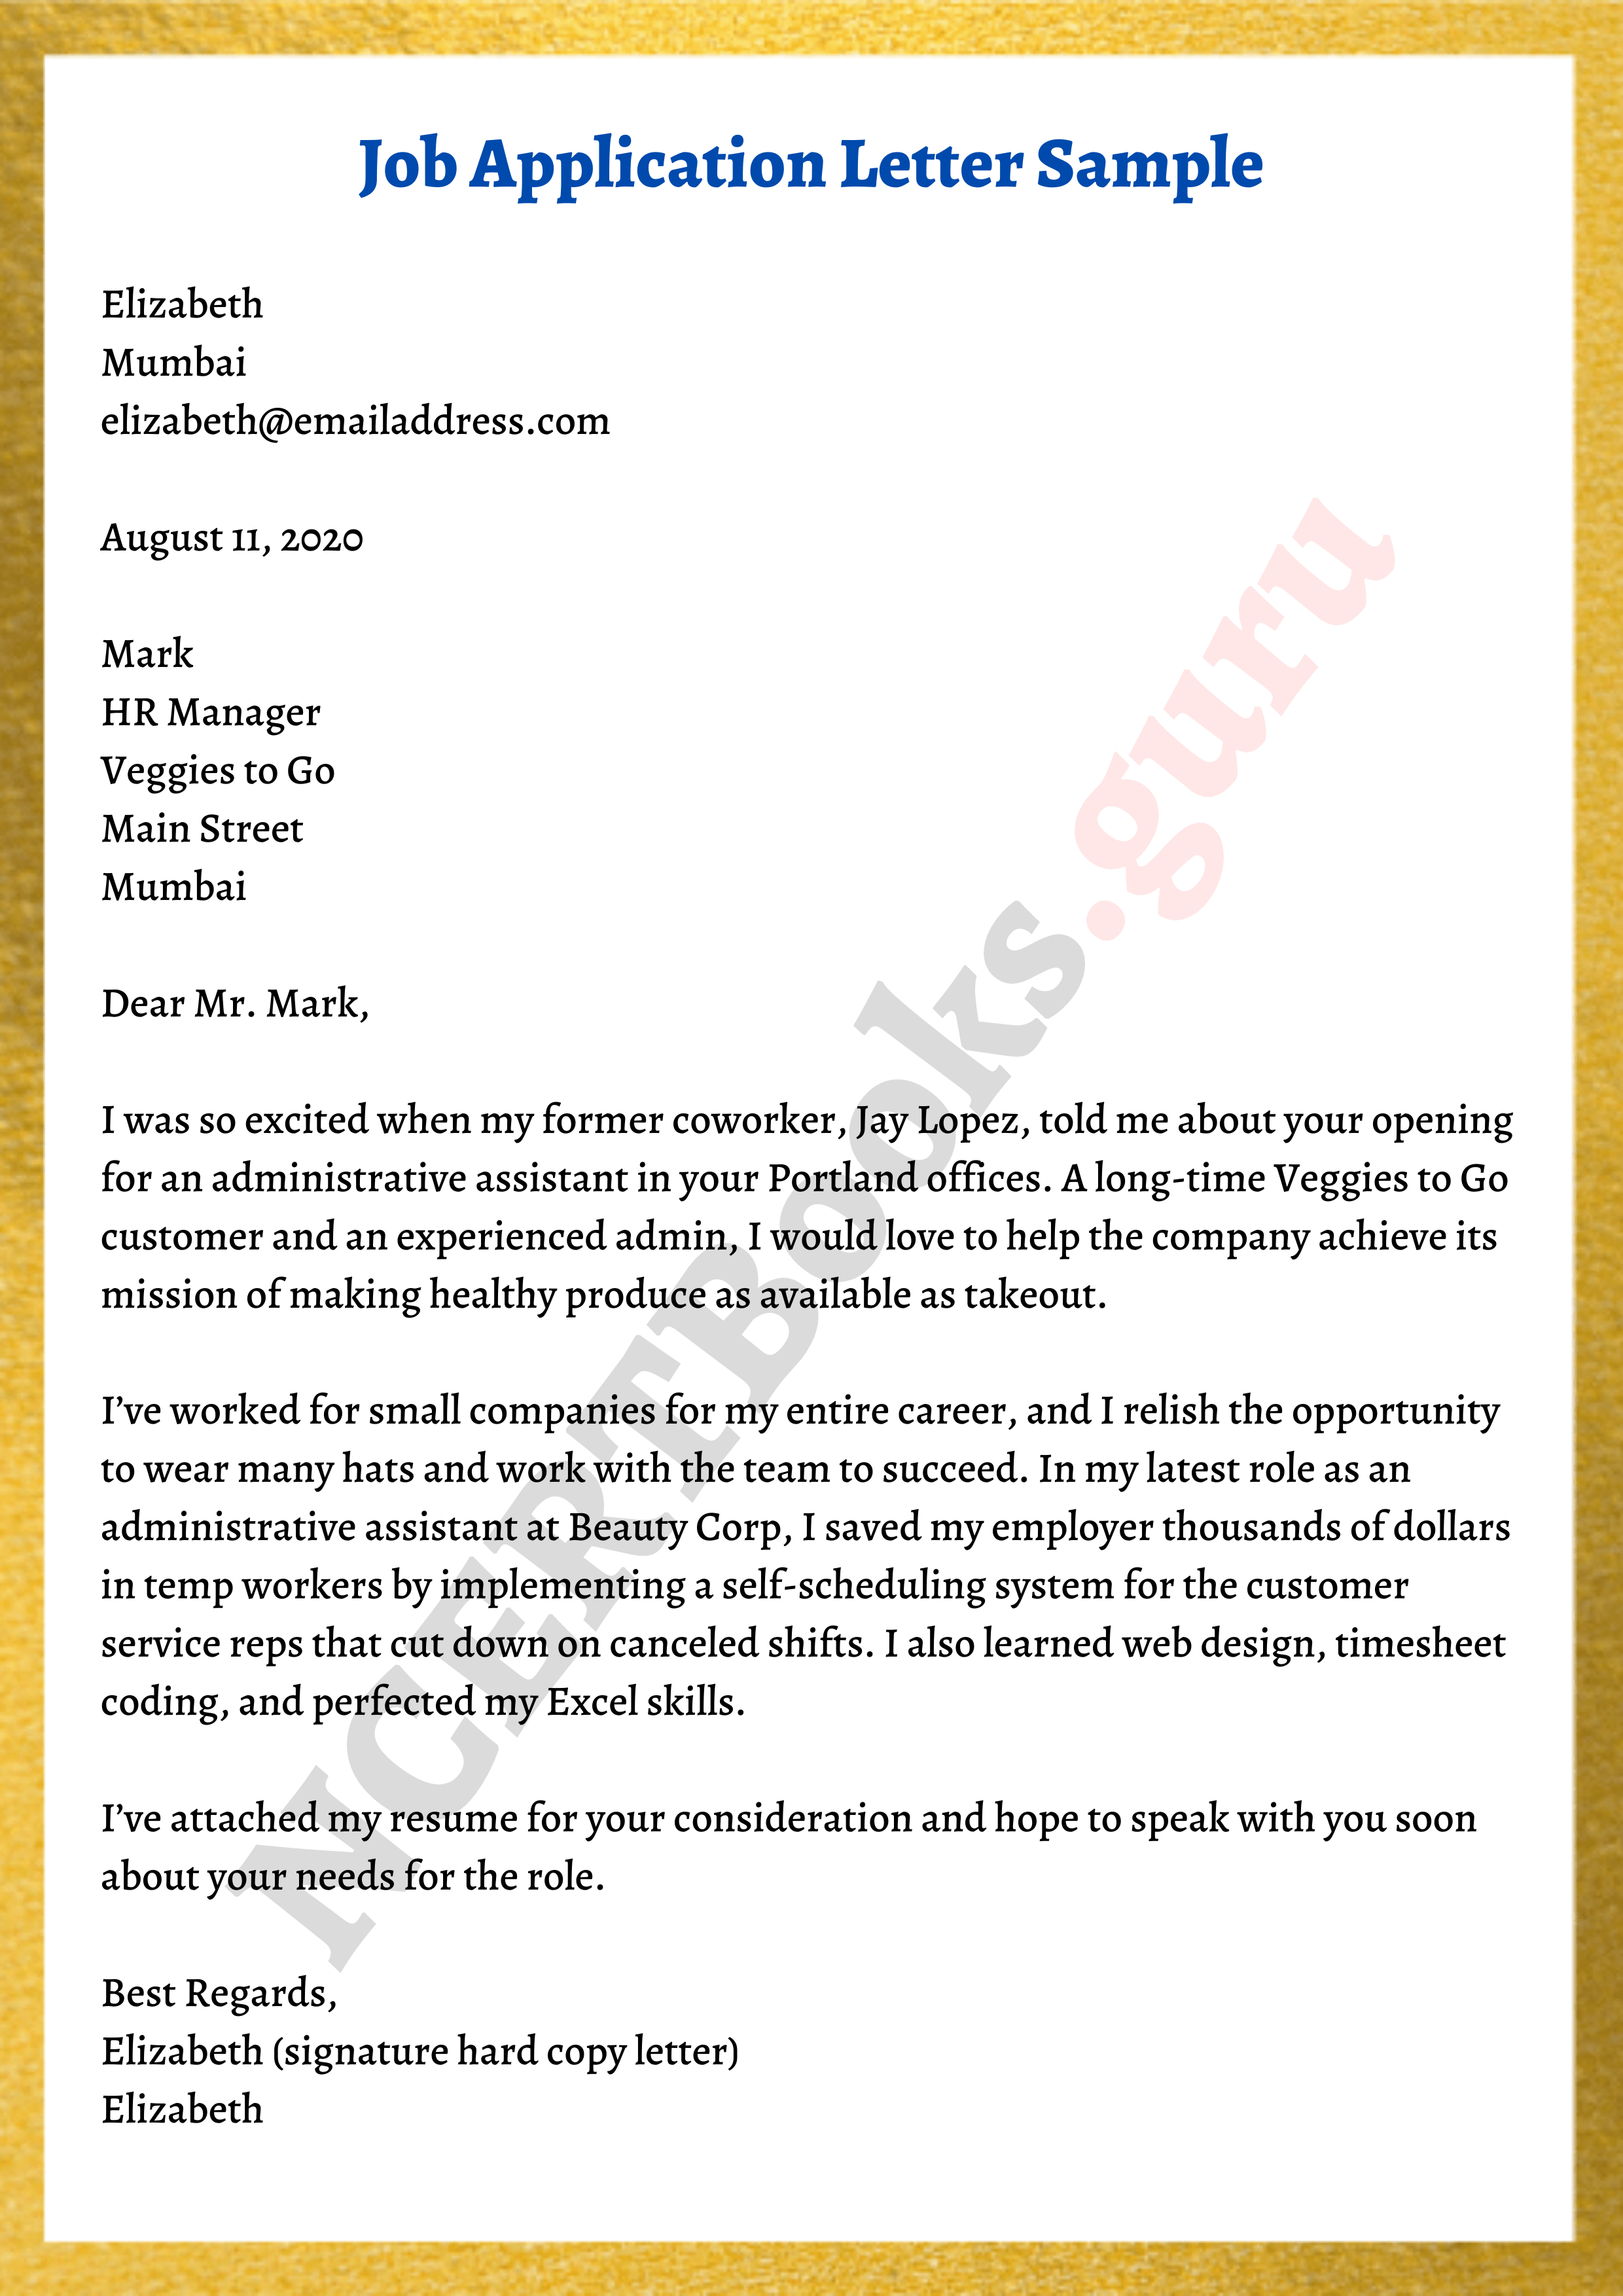 Job Application Letter Format Samples What To Include In Cover Letter